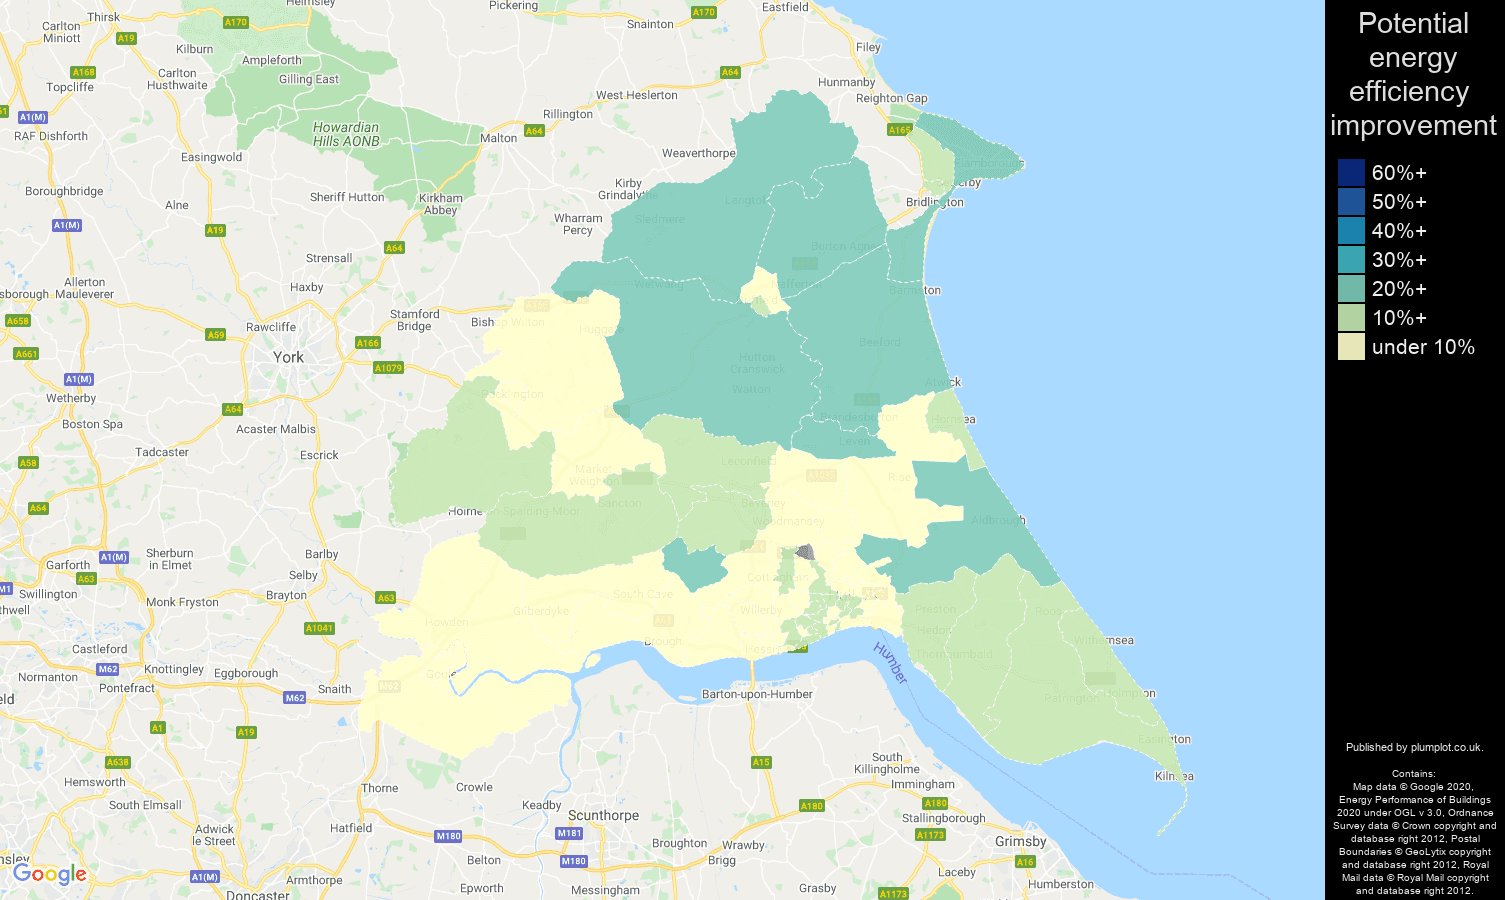 East Riding of Yorkshire map of potential energy efficiency improvement of flats